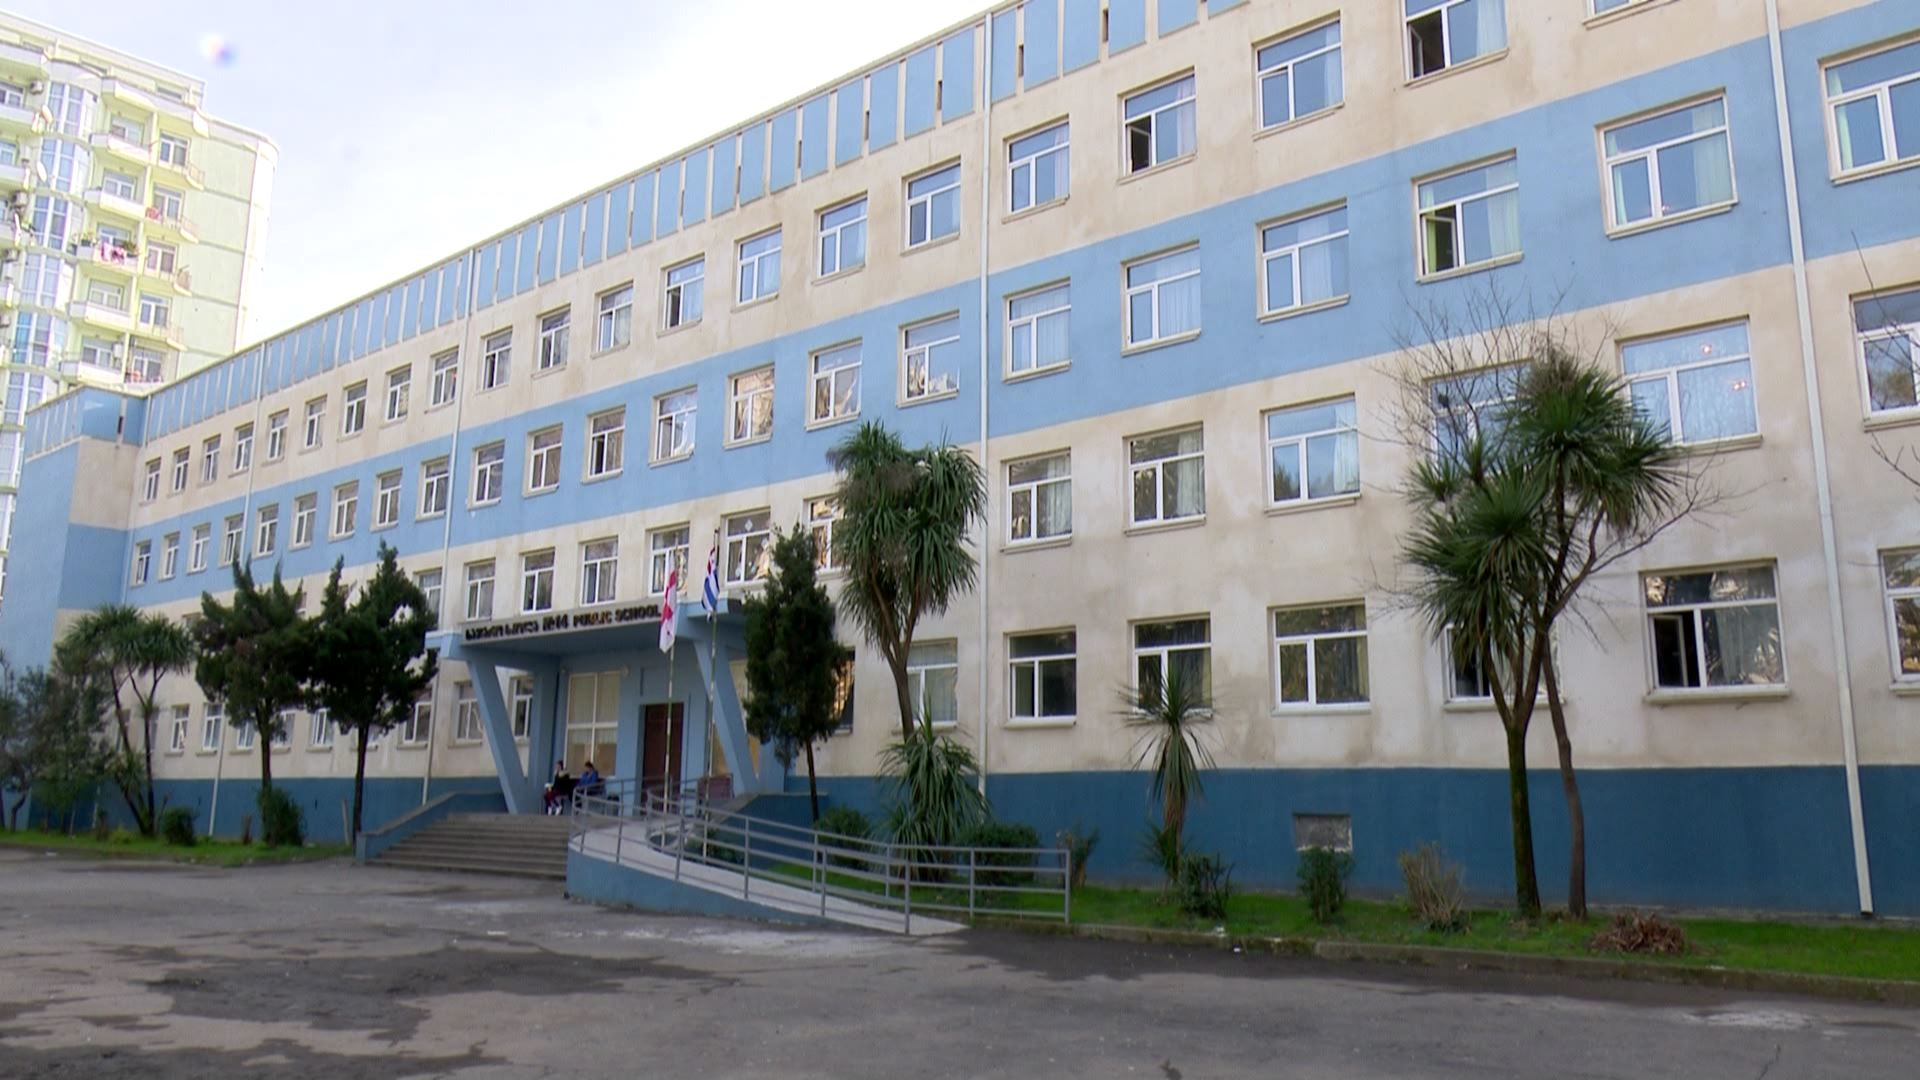 The tender on rehabilitation works of 8 schools was announced in Ajara